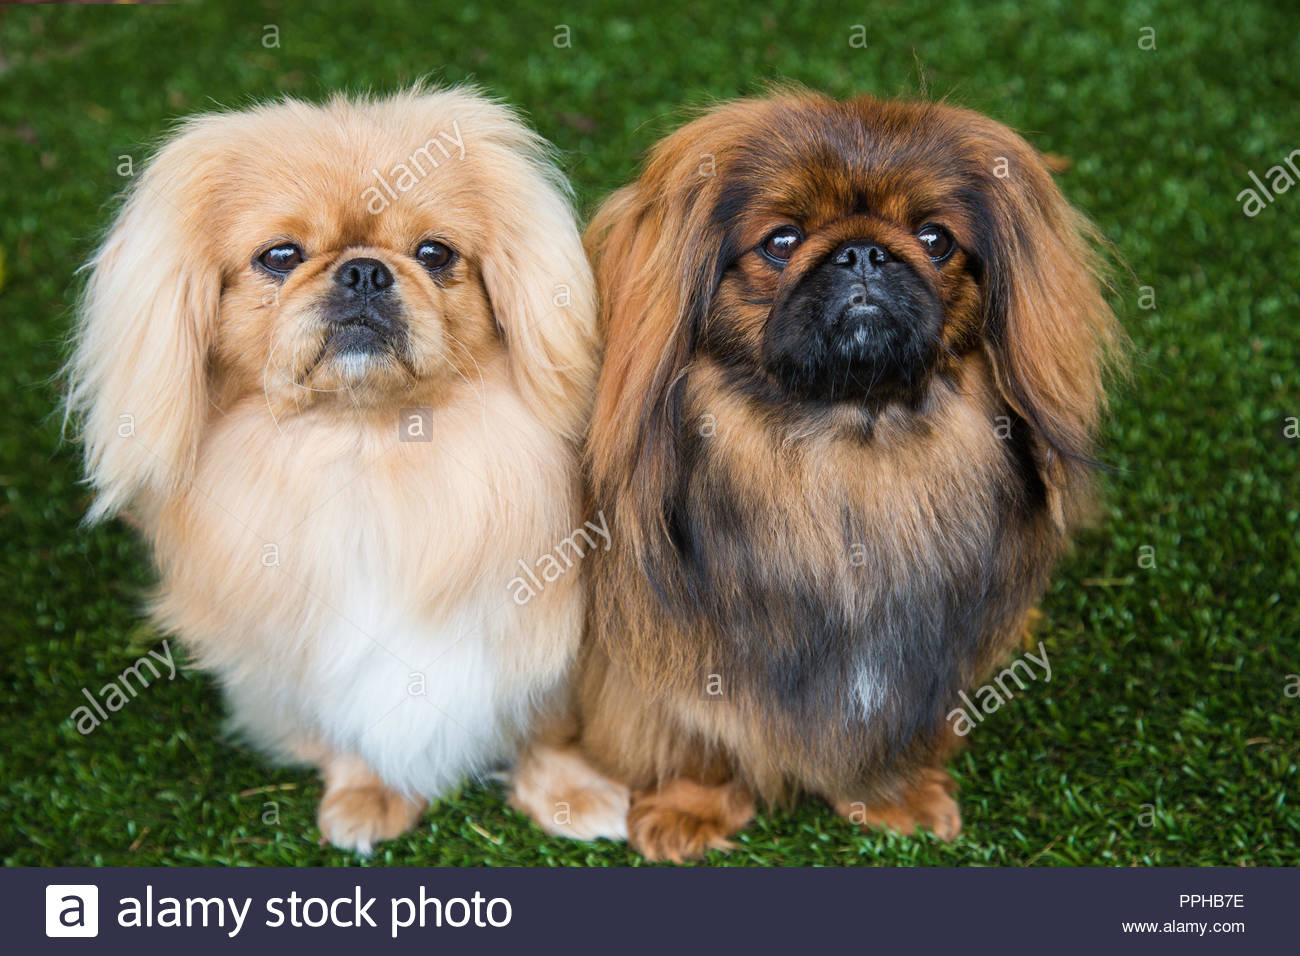 Two cute pekingese dogs standing next to each other on grass with serious expressions - Stock Image